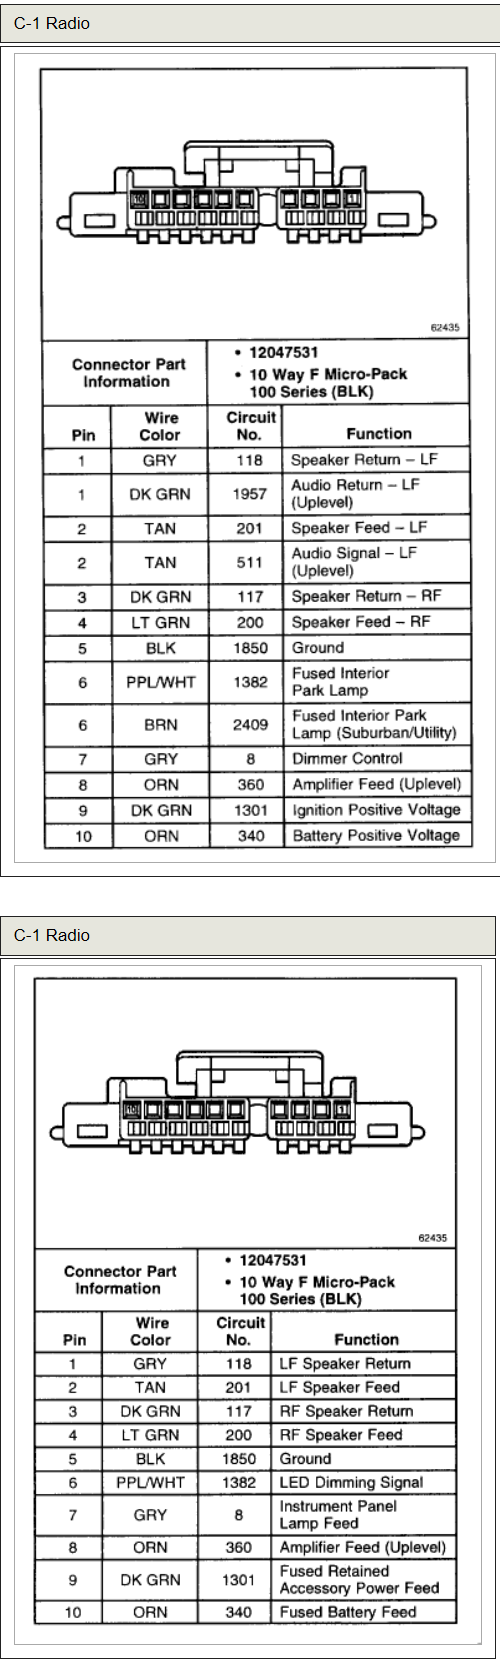 2001 Chevy Cavalier Stereo Wiring Diagram - wiring diagram ground-generate  - ground-generate.hoteloctavia.itground-generate.hoteloctavia.it